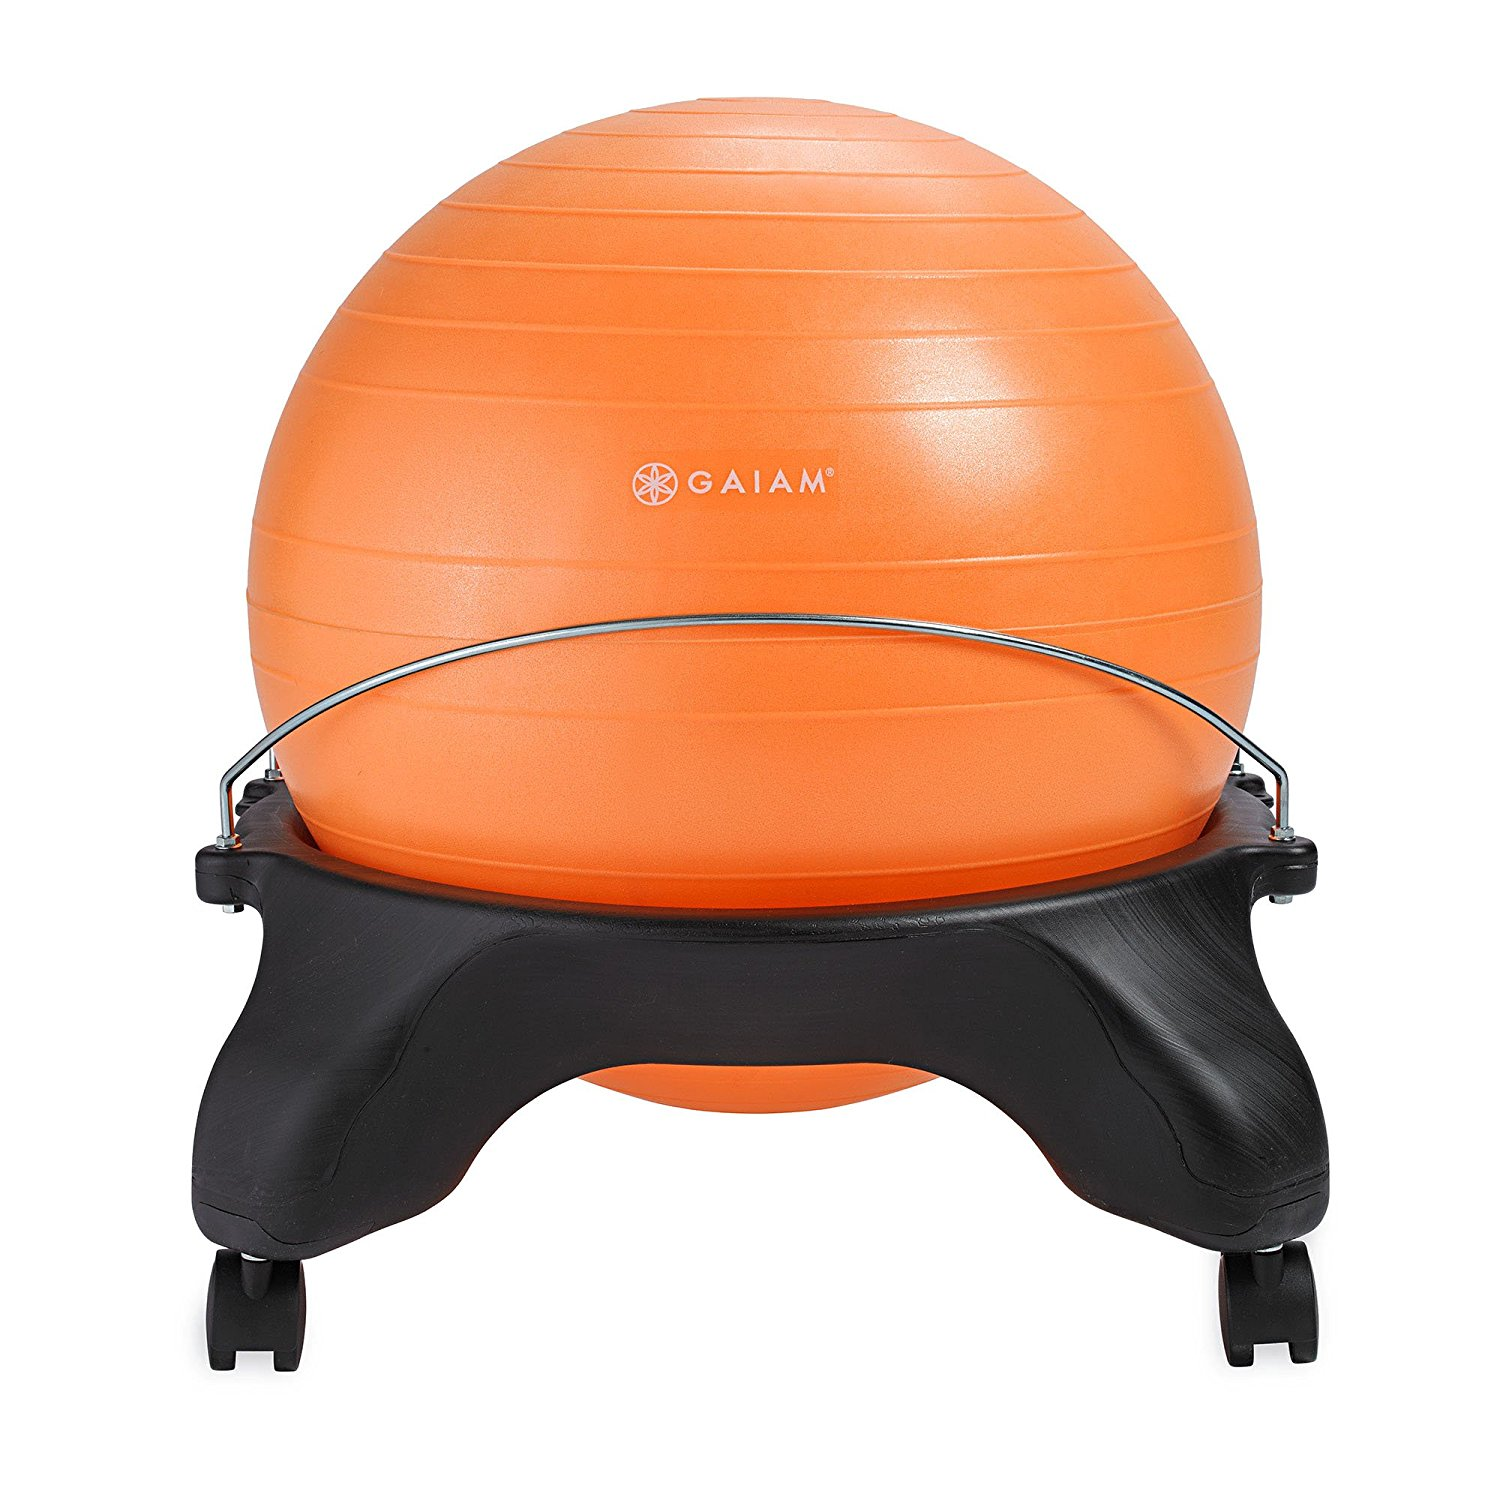 Gaiam Balance Ball Chair Best Exercise Balance Ball Chairs Review 2018